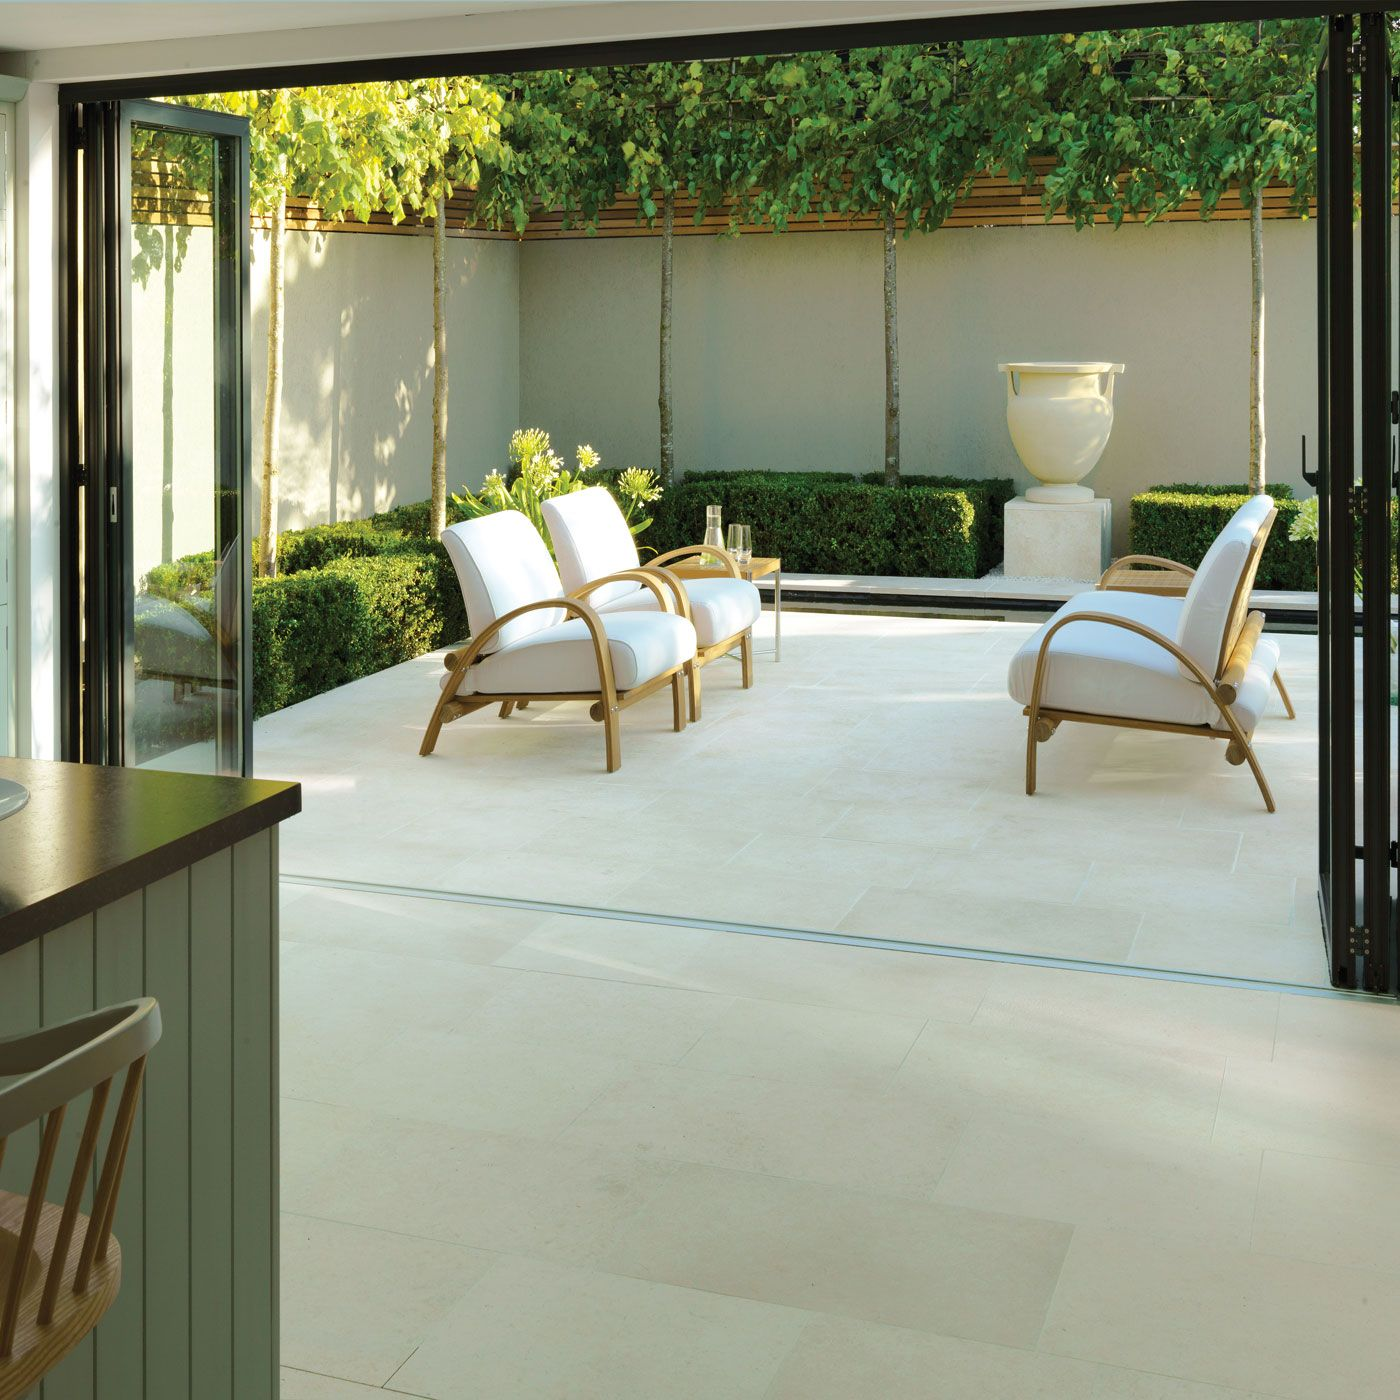 pale stone paving in kitchen through to patio/terrace courtyard